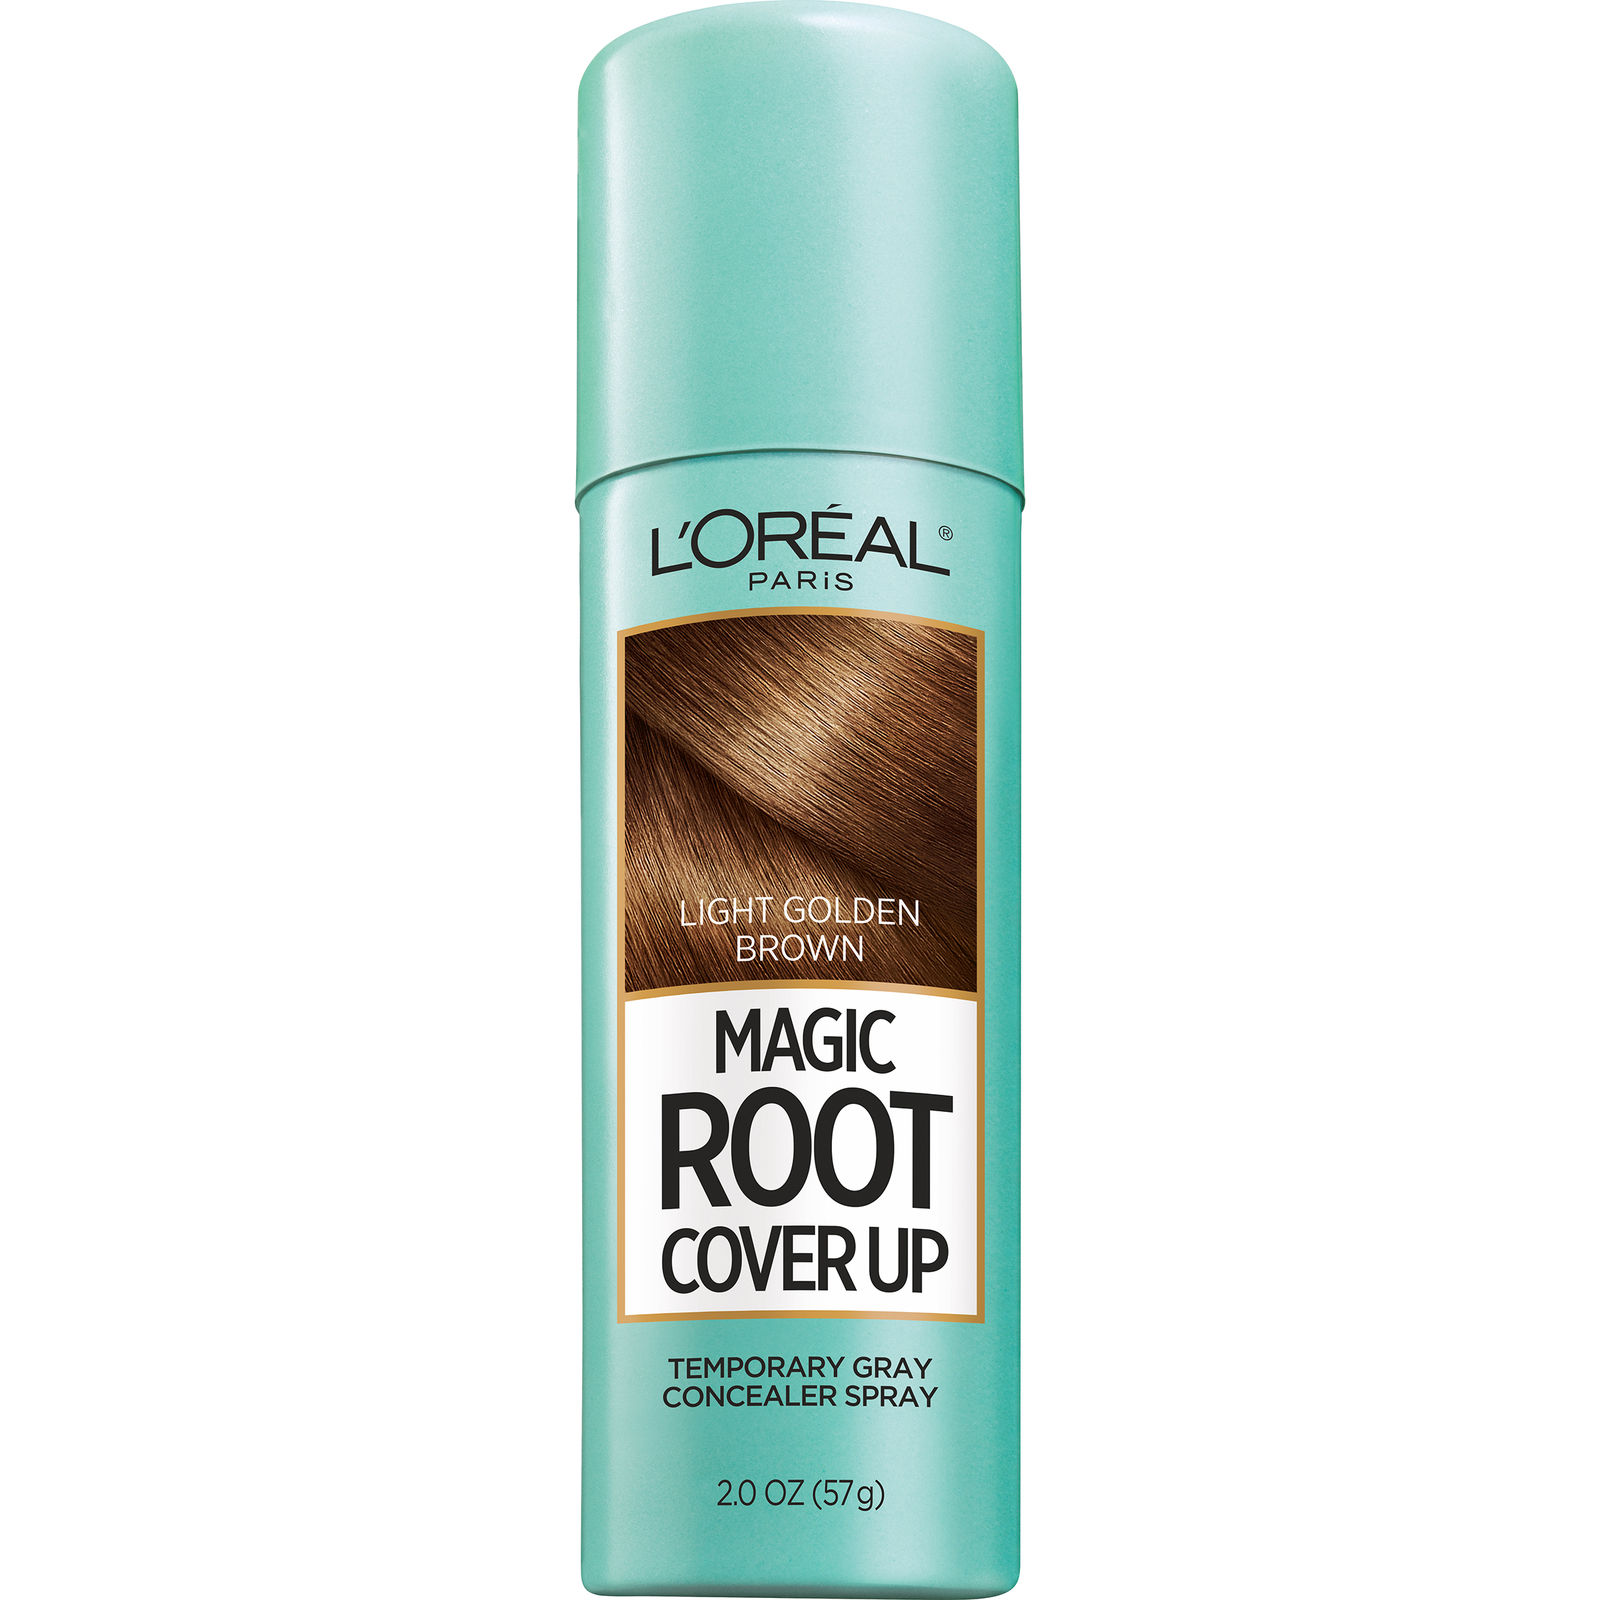 Loral Paris Magic Root Cover Up Gray Concealer Spray899 Free